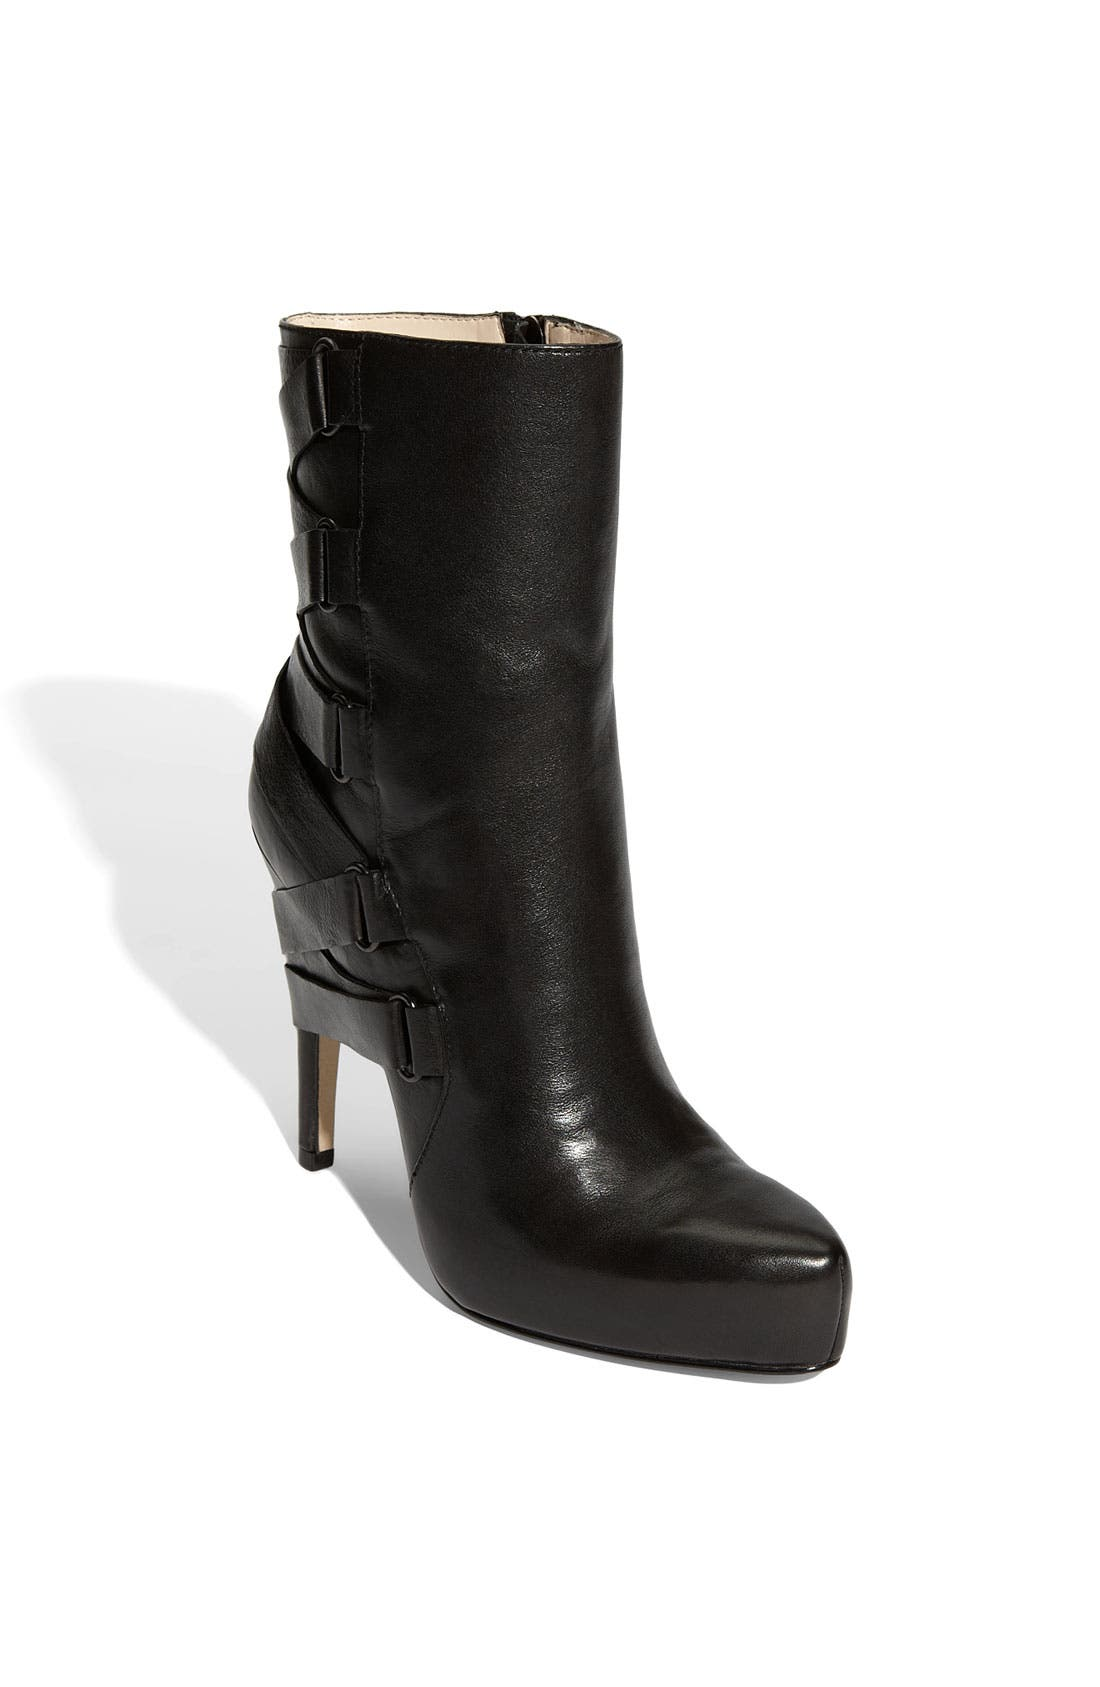 Main Image - Boutique 9 'Strut' Ankle Boot